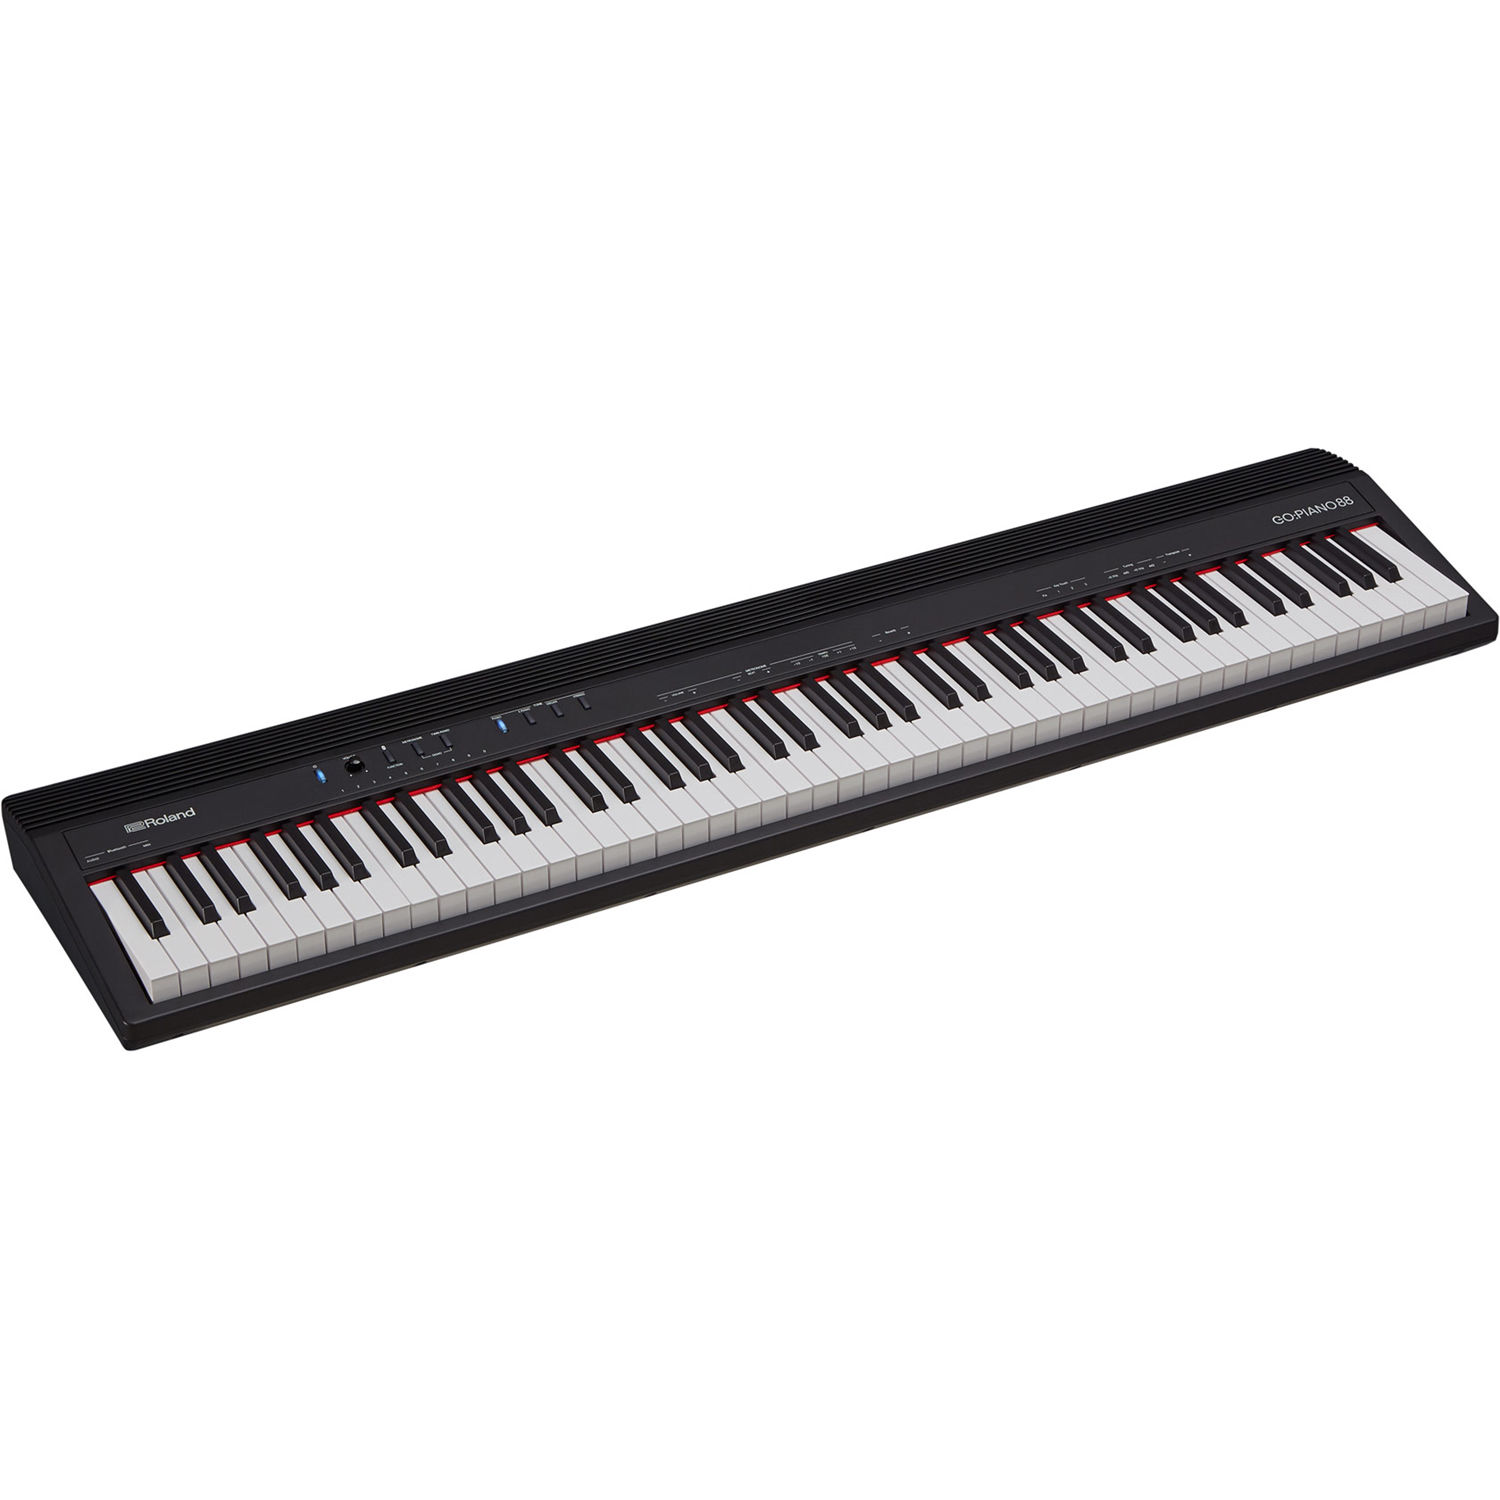 roland go piano88 88 note digital piano with onboard go 88p b h. Black Bedroom Furniture Sets. Home Design Ideas